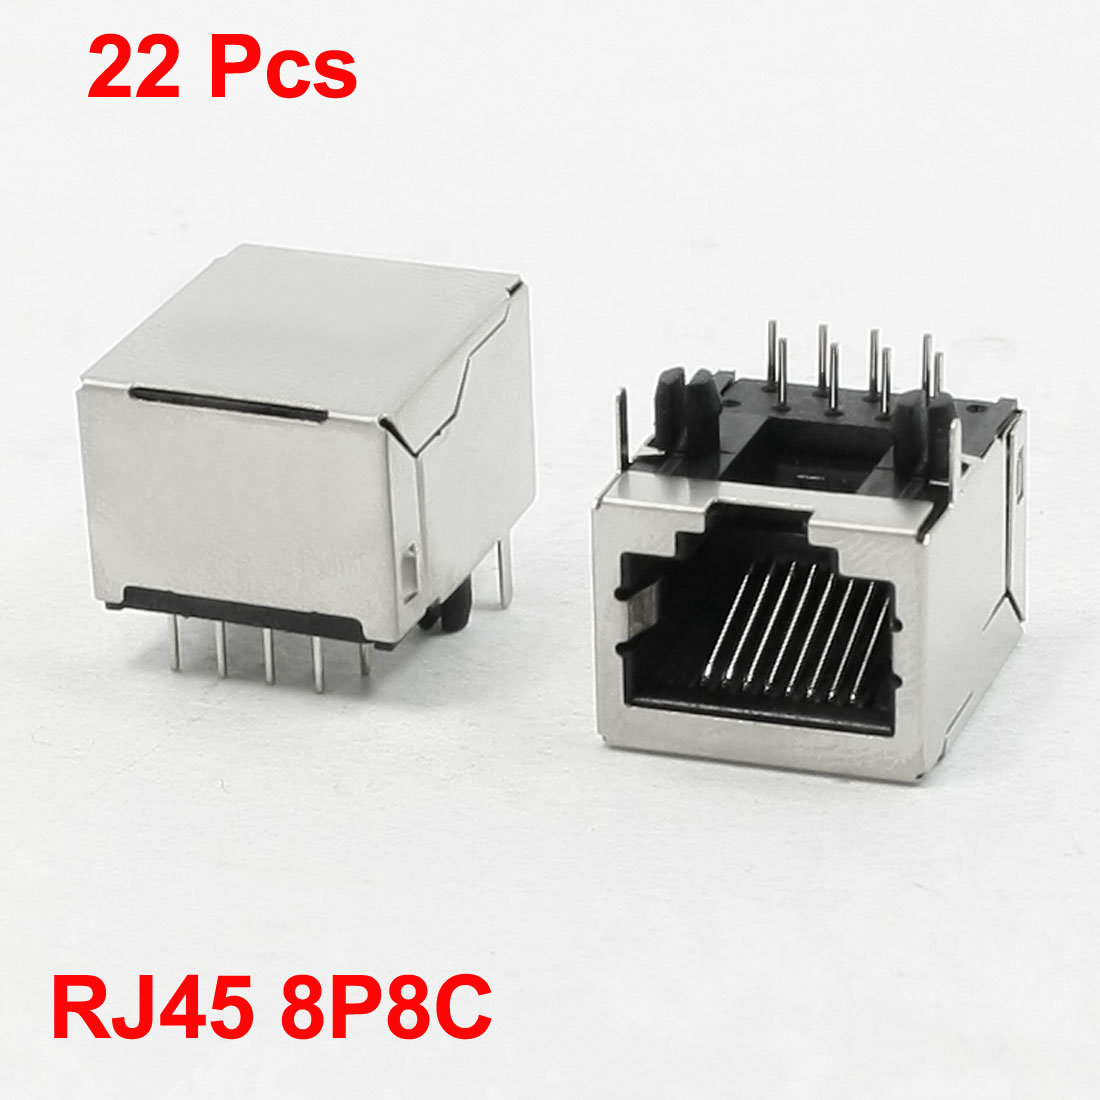 22 Pcs 8P8C Right Angle Pins RJ45 PCB Jacks Sockets 21 x 16 x 17mm